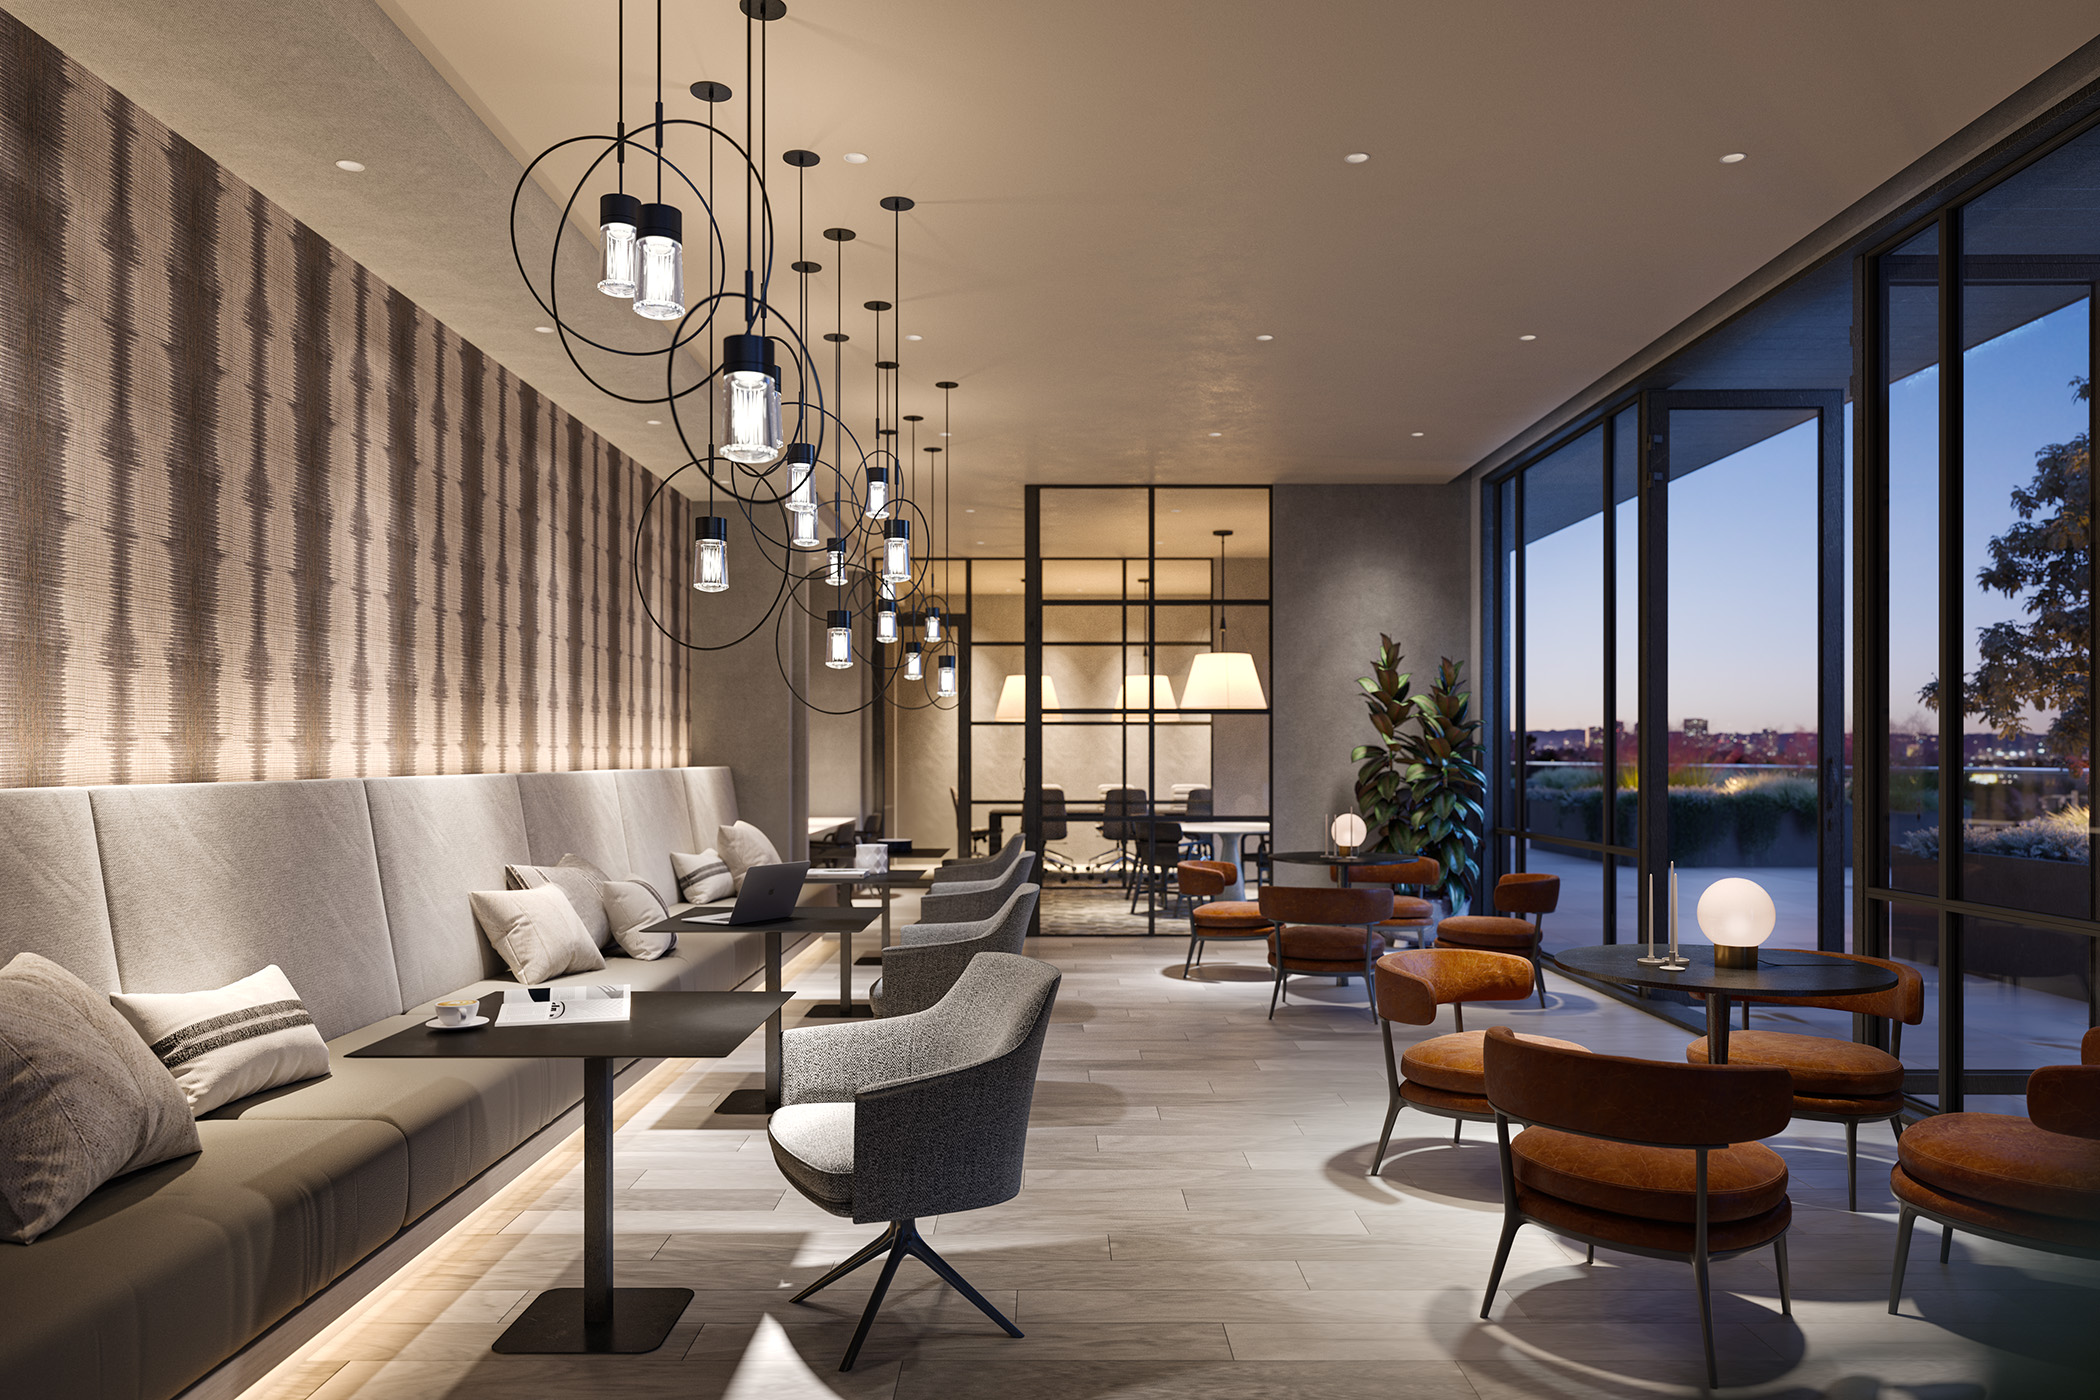 Interior of common meeting area with long bench seating, small tables, chairs, and wall of floor to ceiling windows.